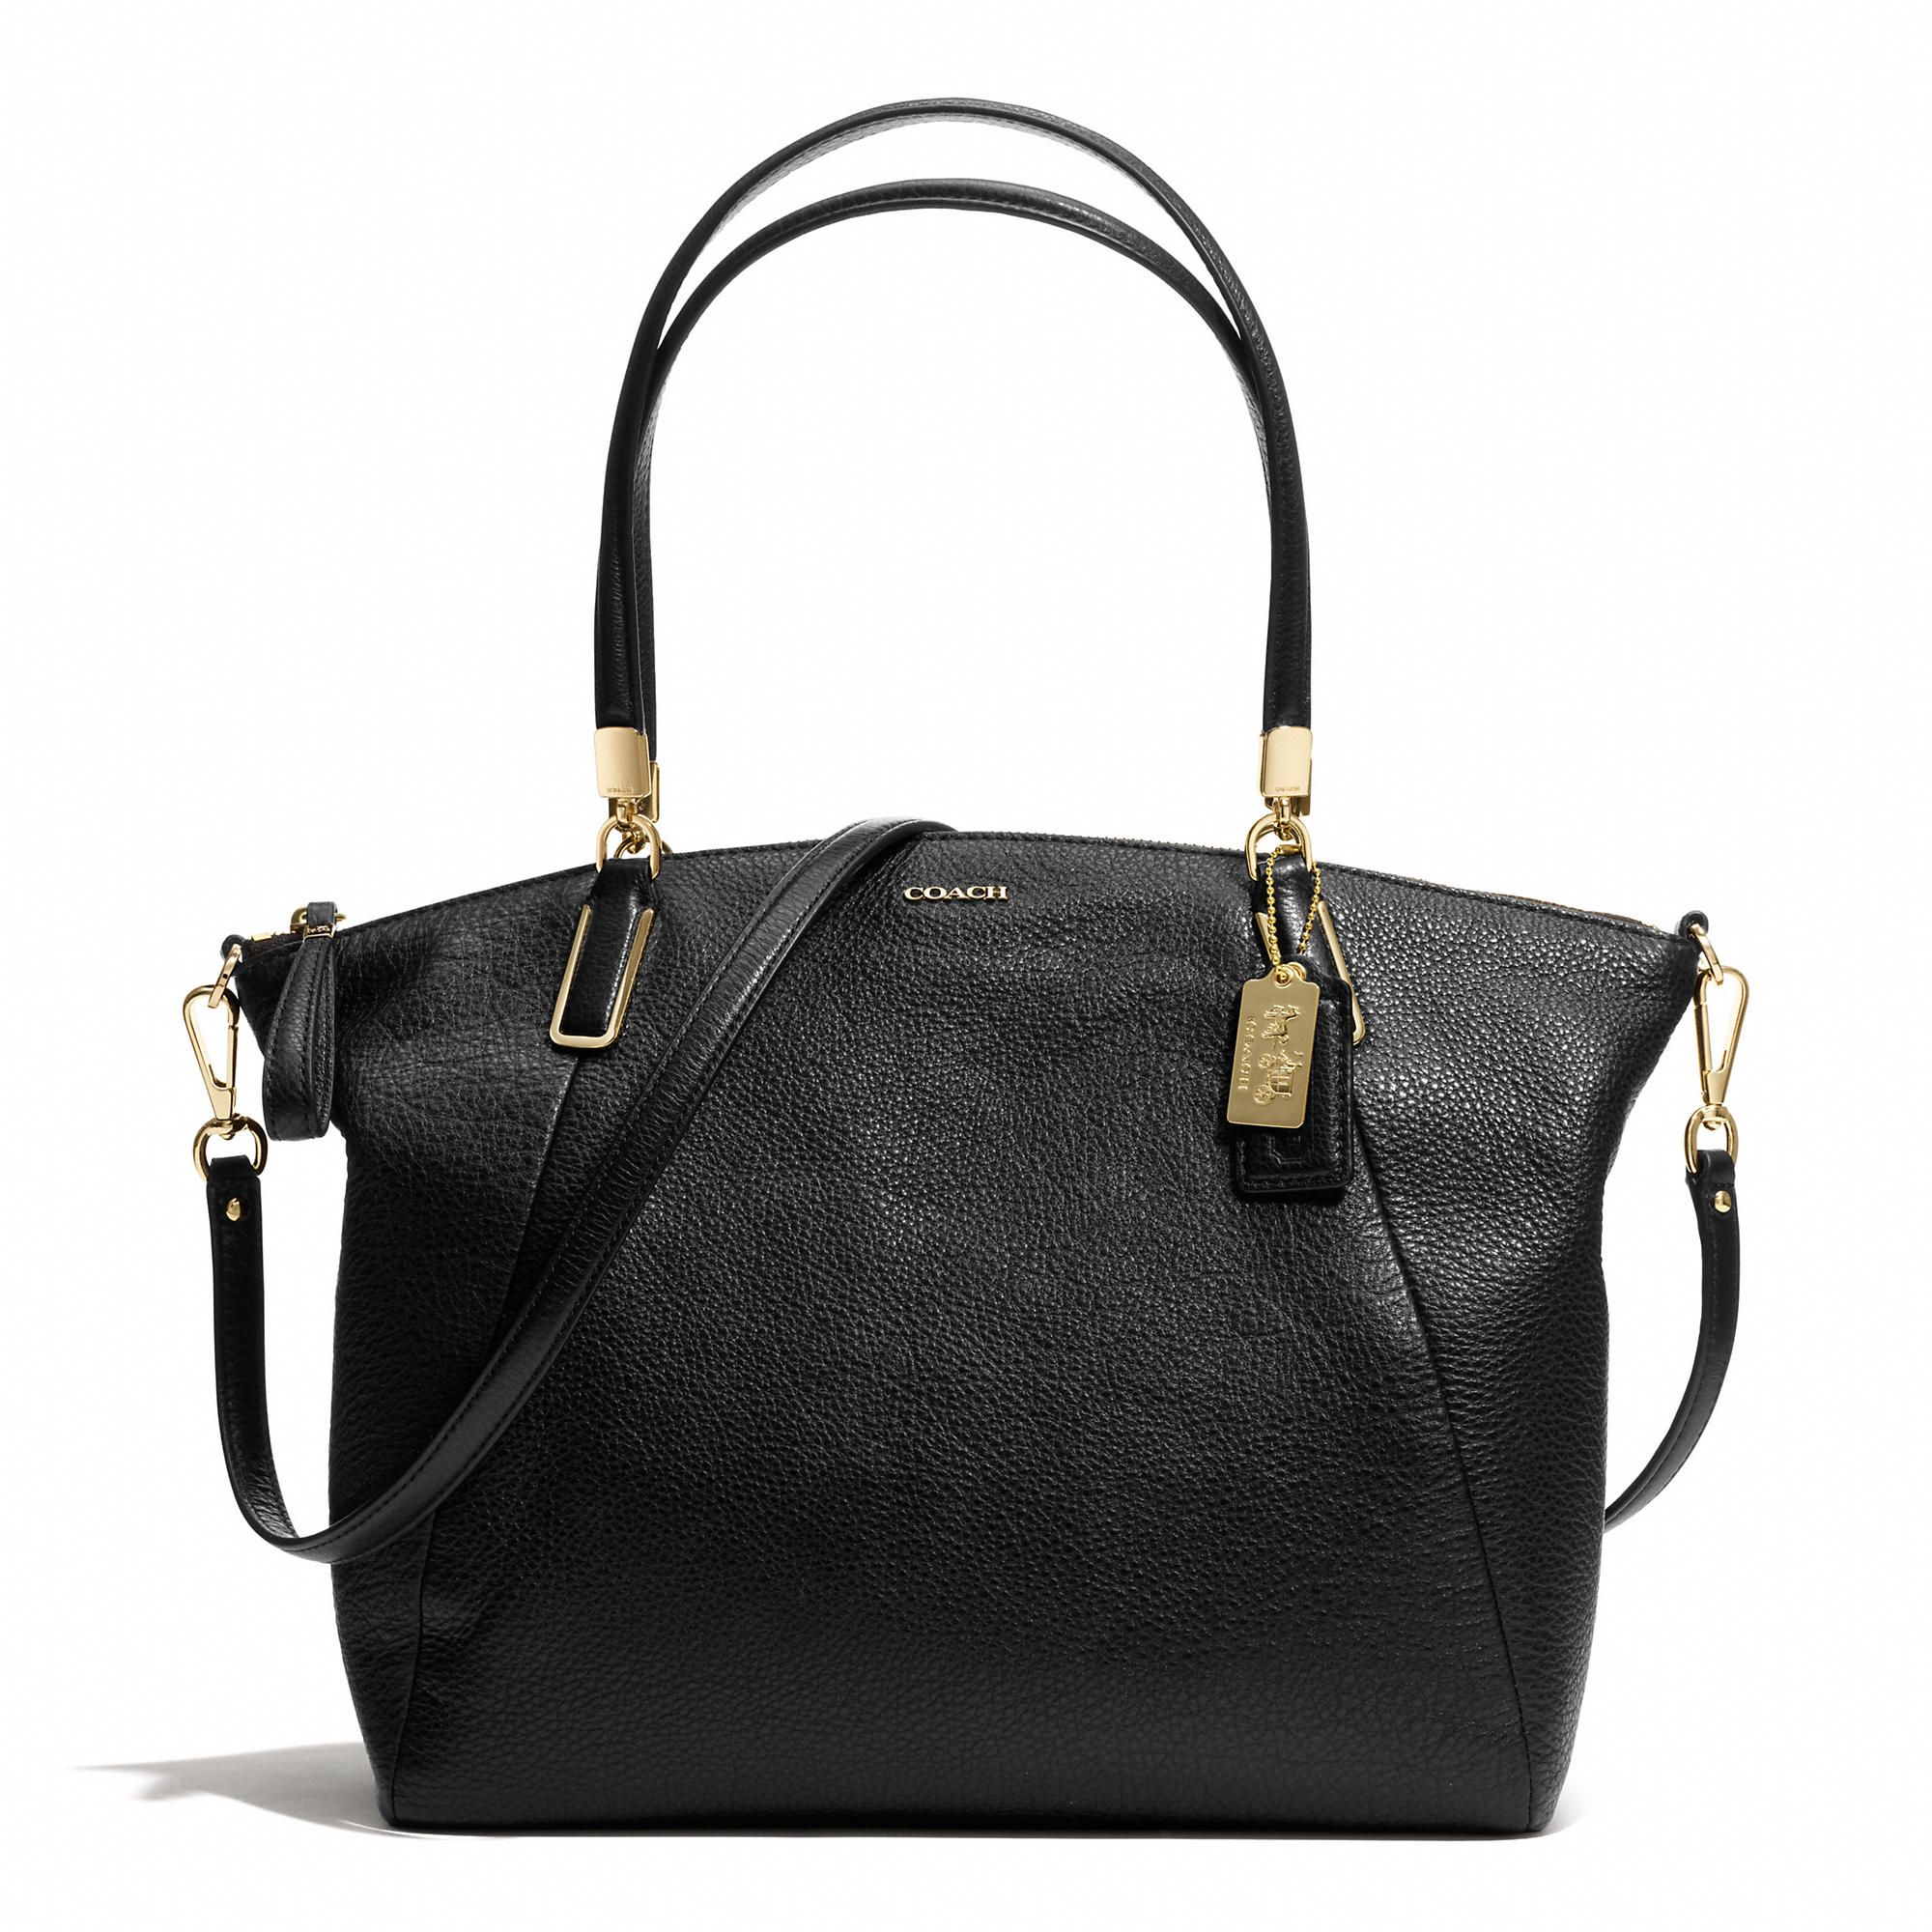 huge selection of 591d2 d0f9b Coach :: MADISON KELSEY CROSSBODY IN LEATHER black ...